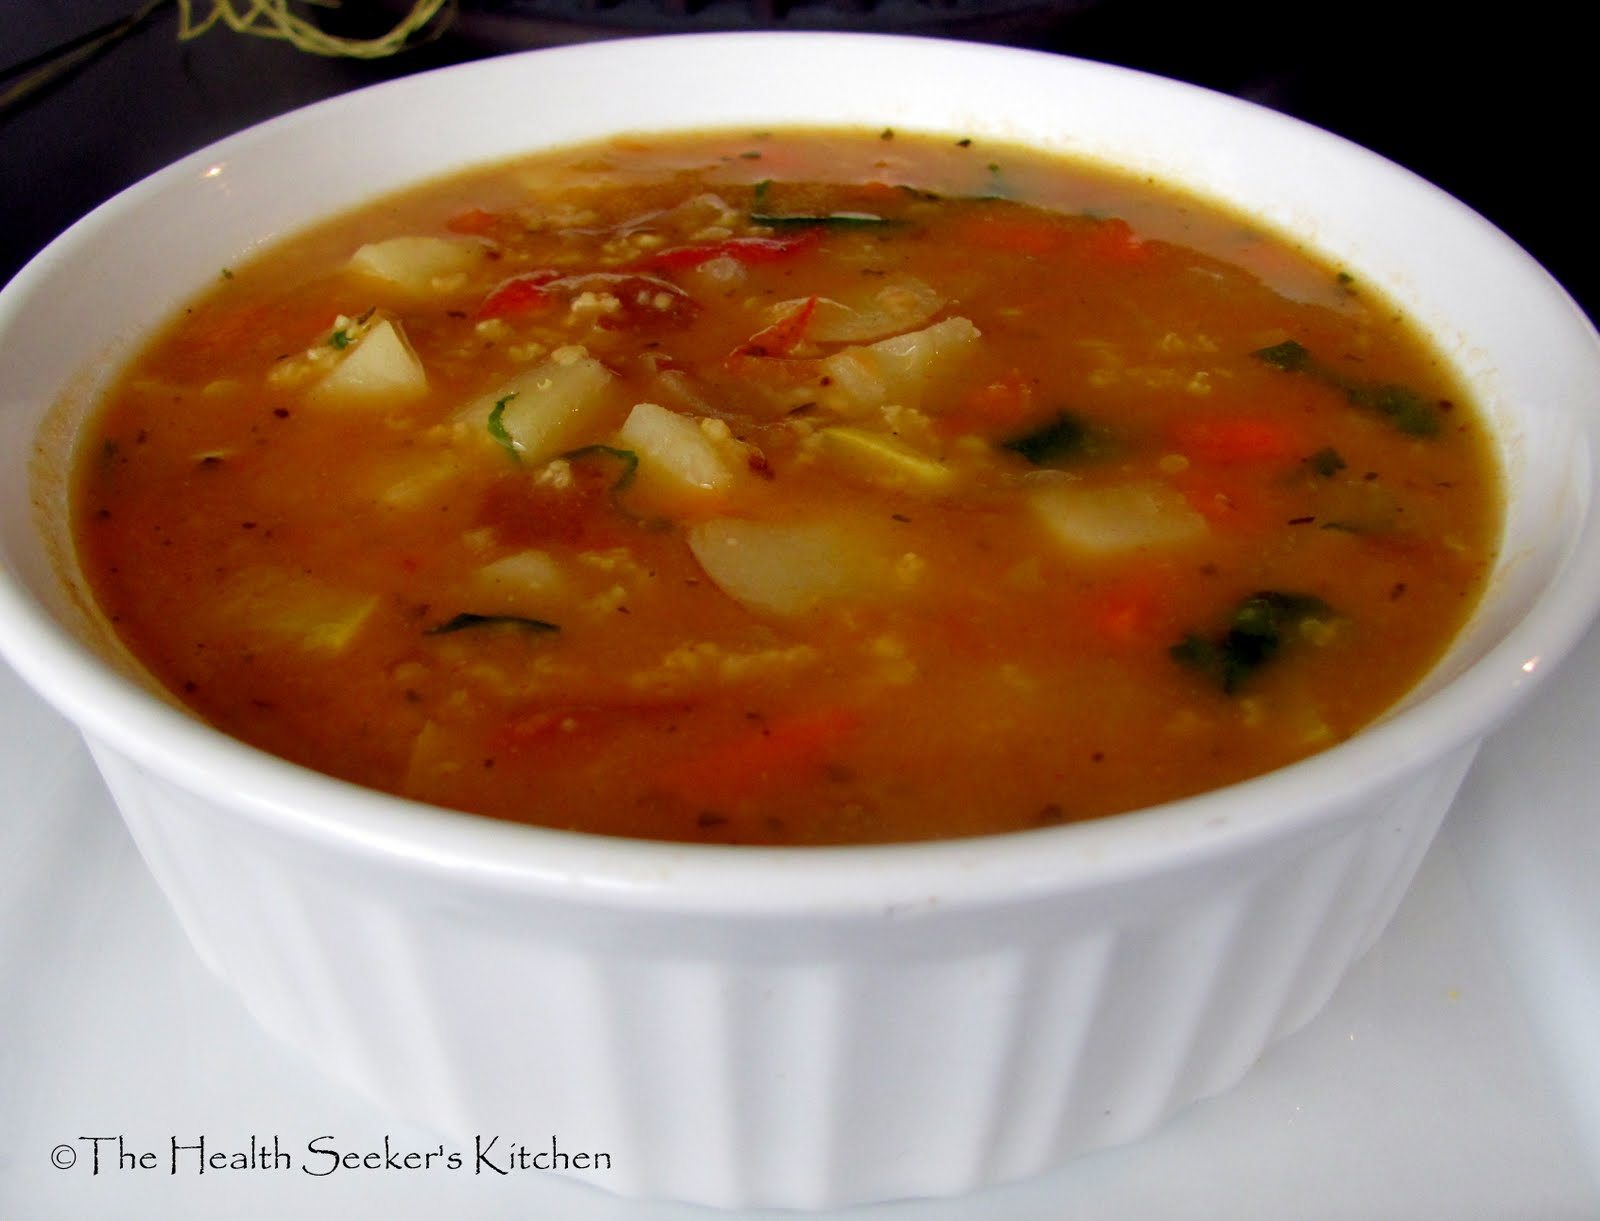 The Health Seekers Kitchen: Savory Quinoa and Vegetable Soup